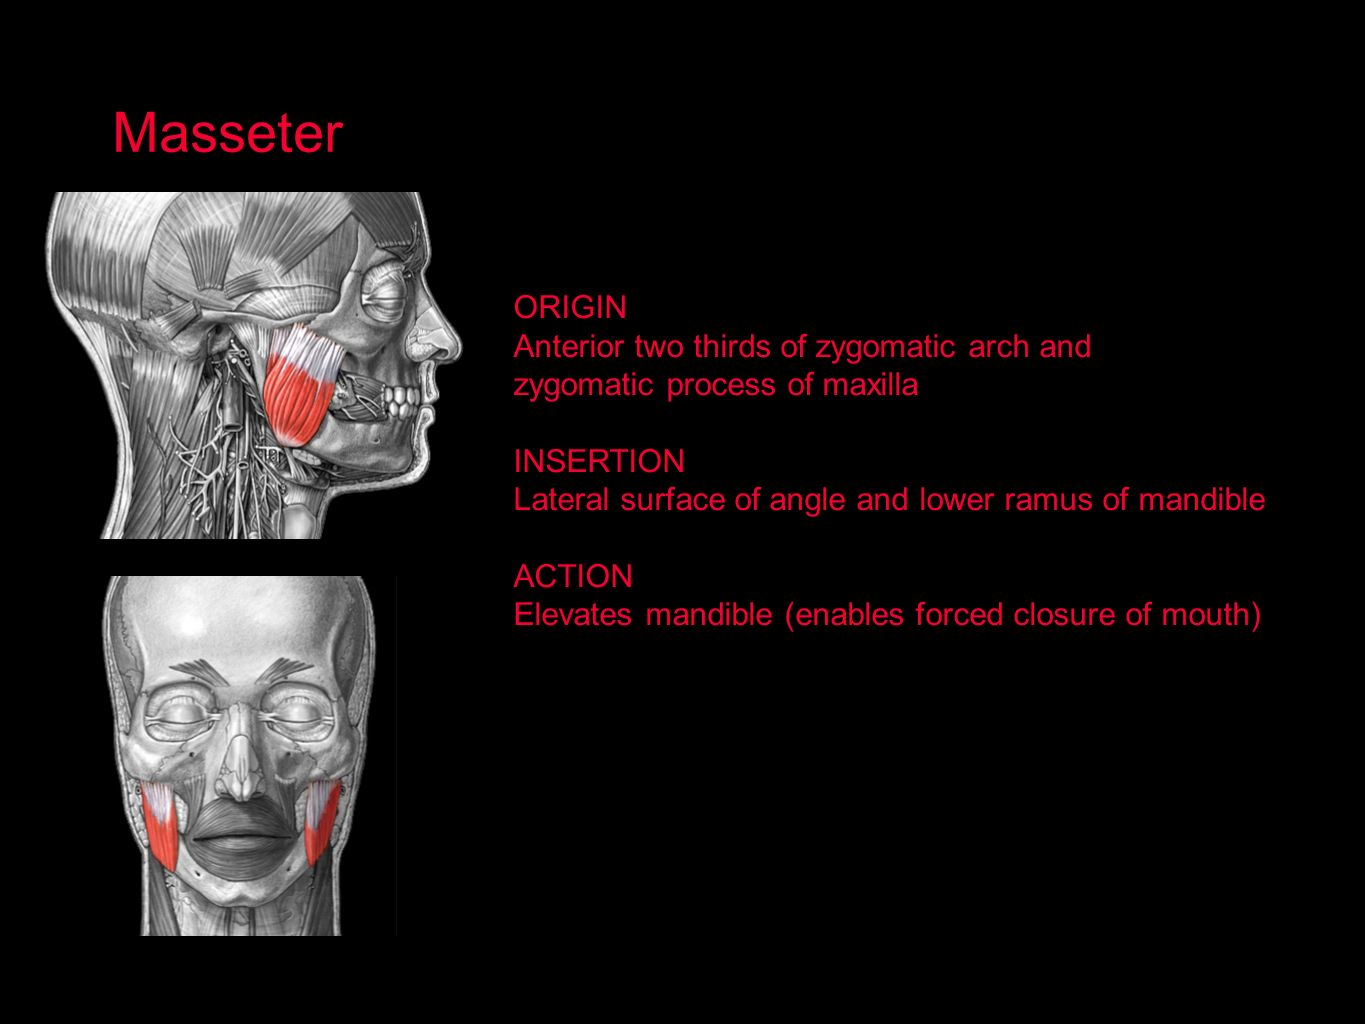 Masseter ORIGIN Anterior two thirds of zygomatic arch and